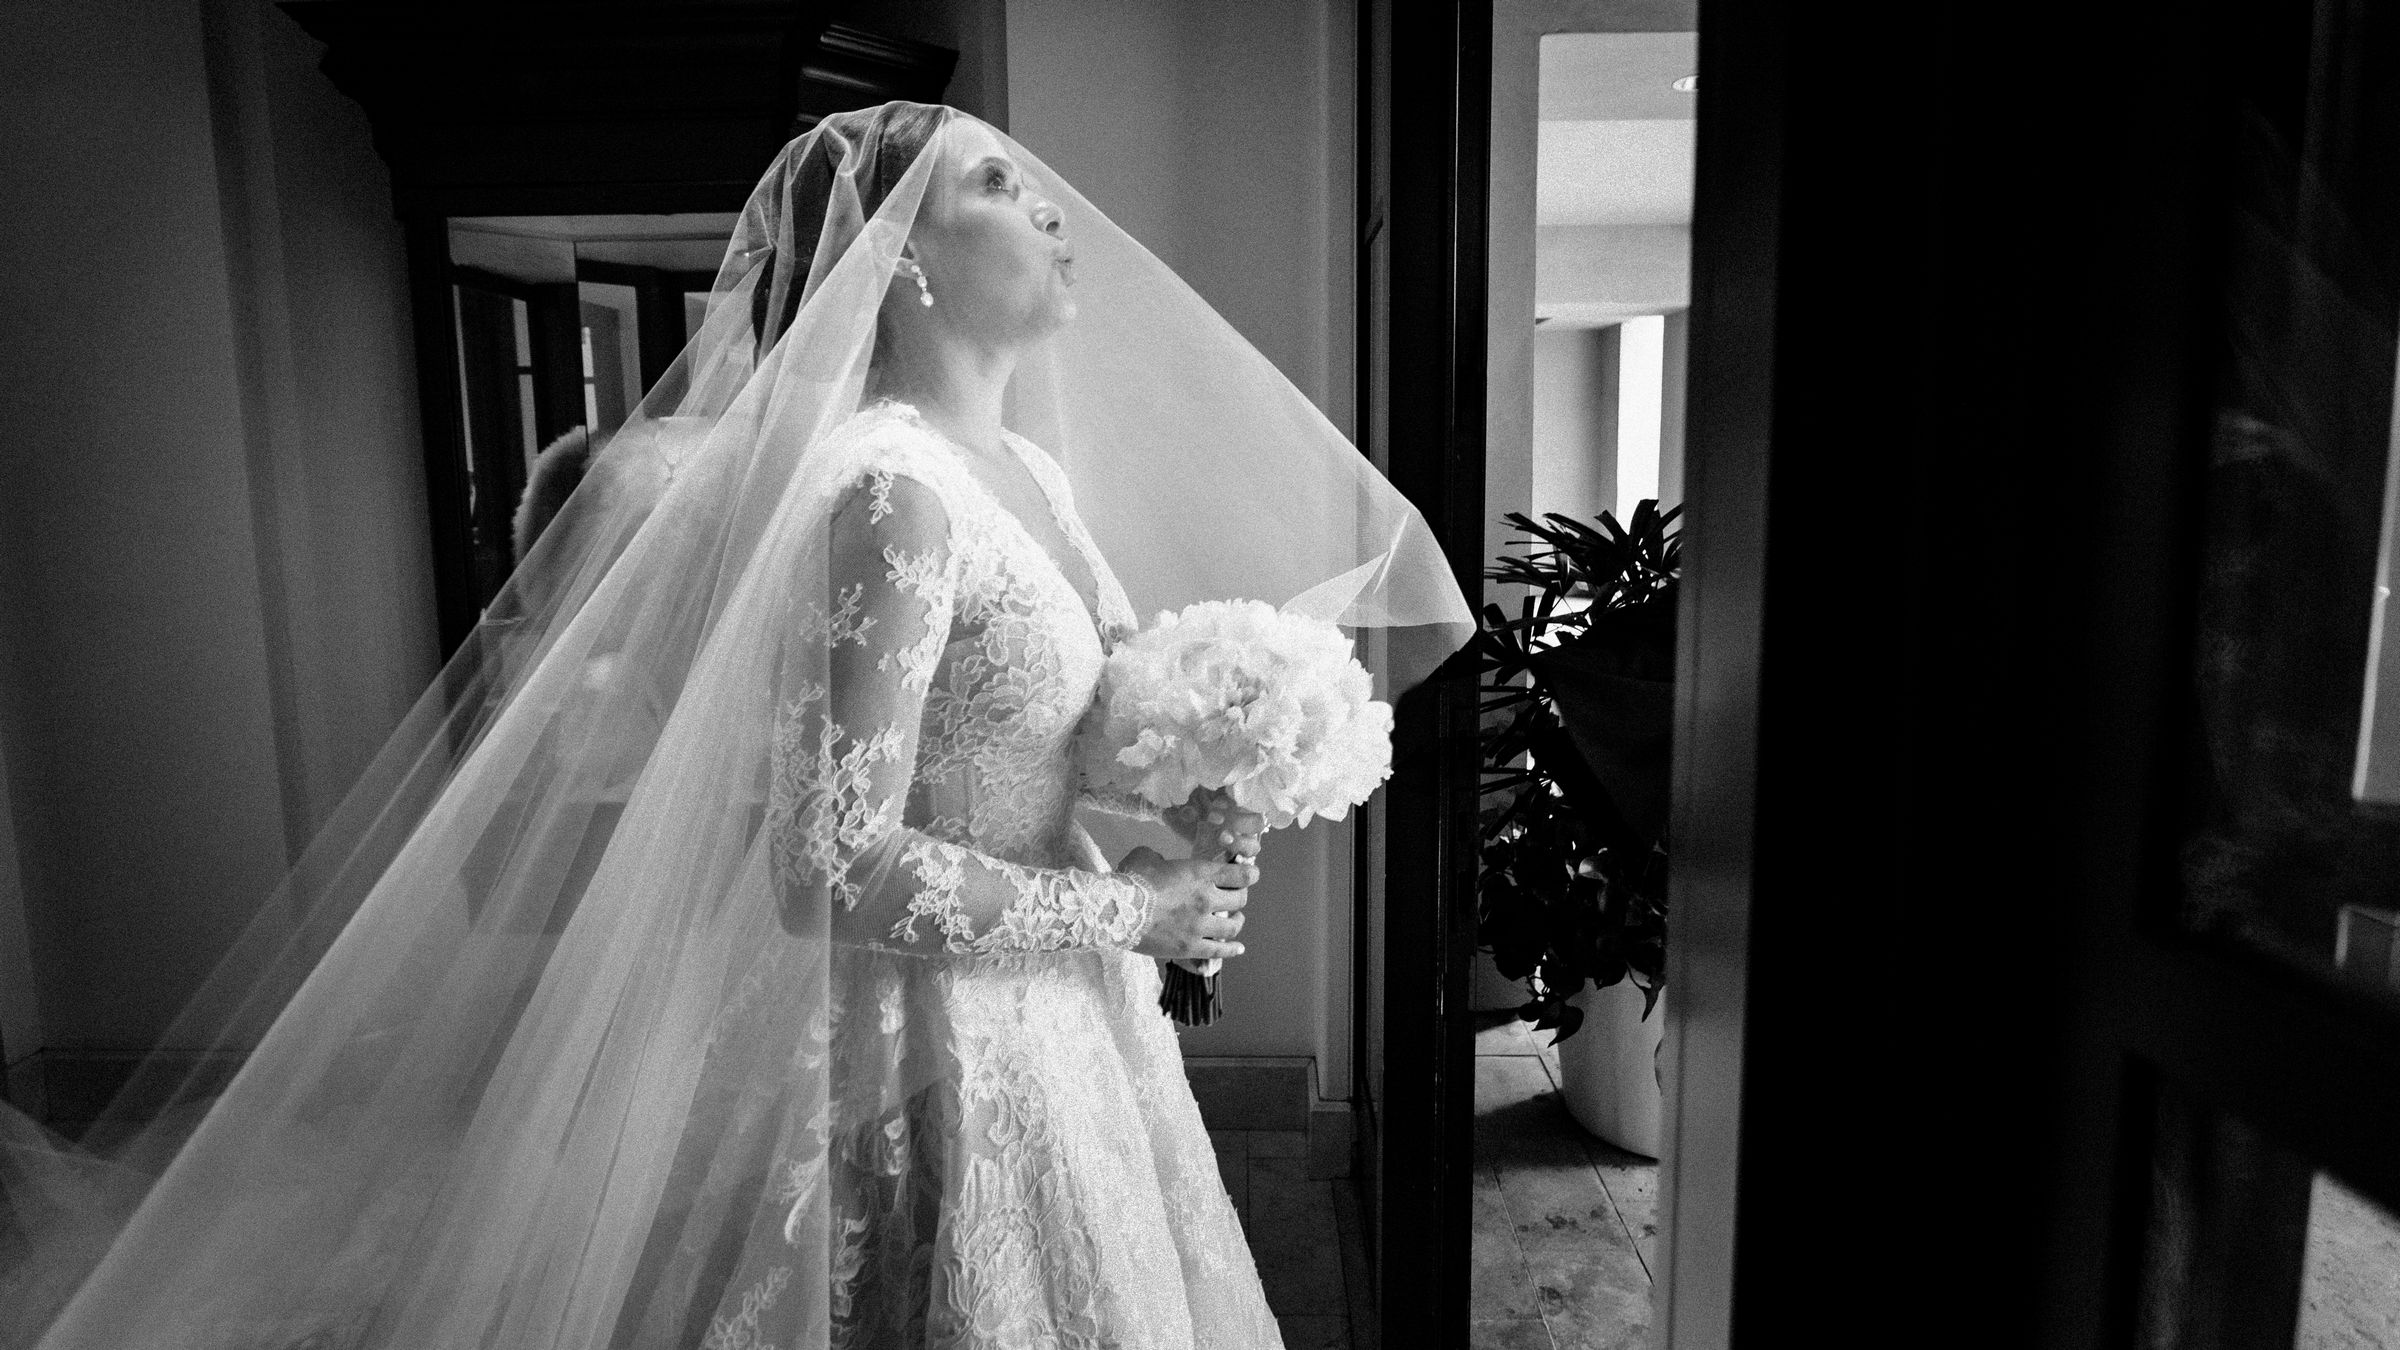 maria-emotional-moments-before-walking-down-the-aisle-wedding-mzef1492.jpg